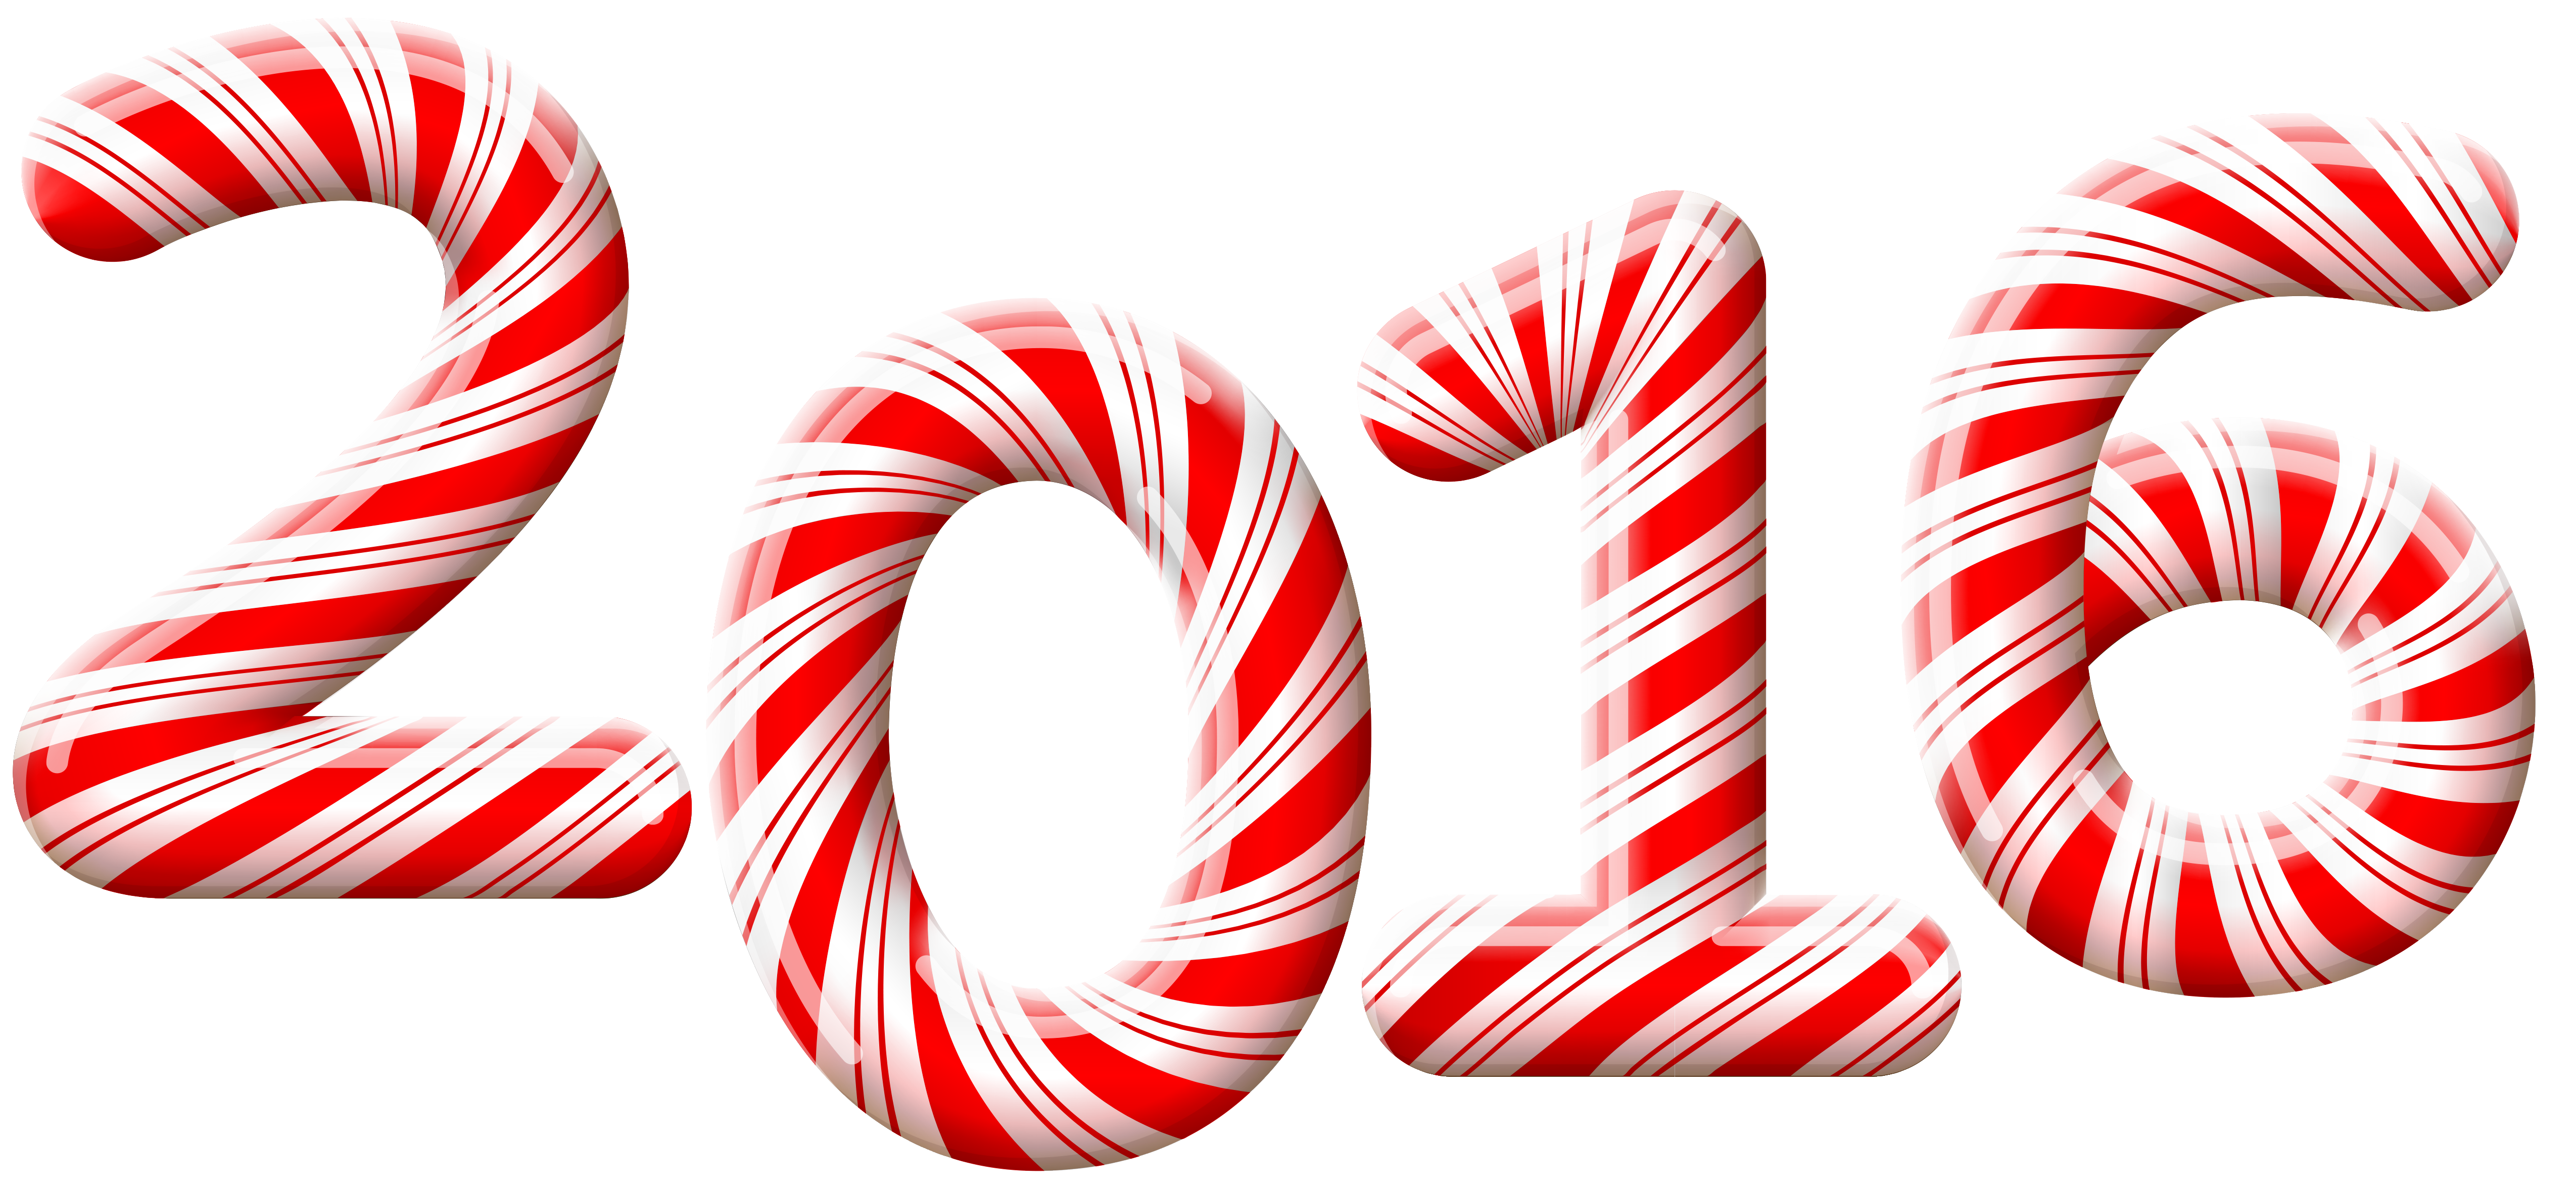 candy cane png. 2016 clipart christmas